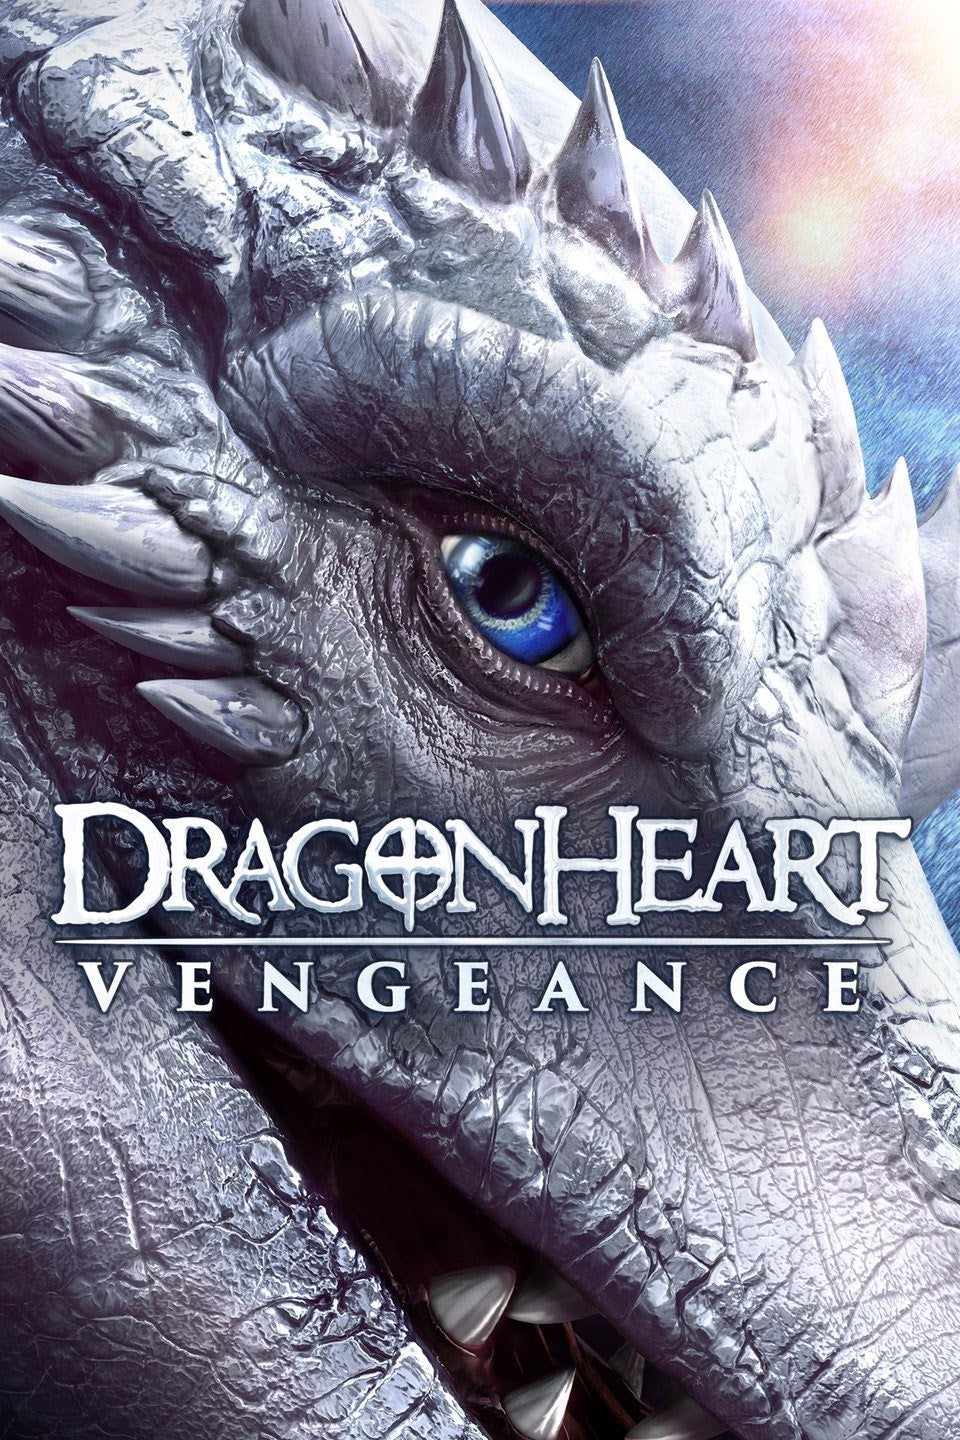 Dragonheart: Vengeance (2020) Vudu or Movies Anywhere HD code